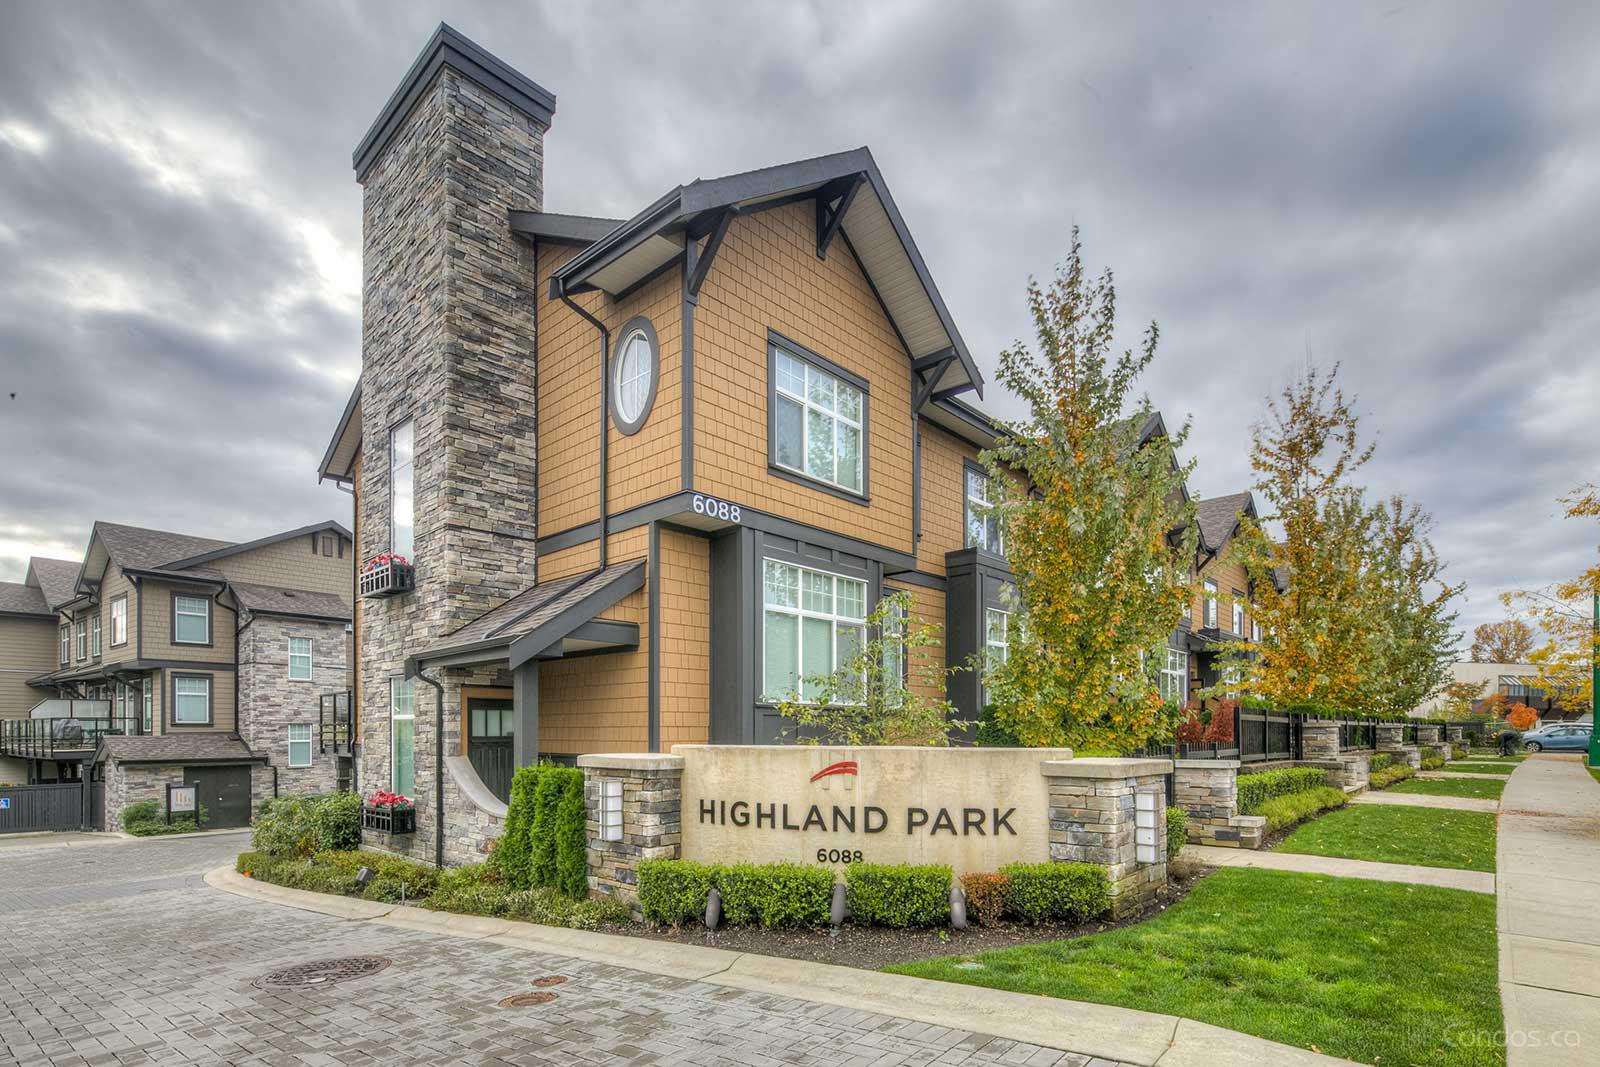 Highland Park at 6088 Beresford St, Burnaby 0